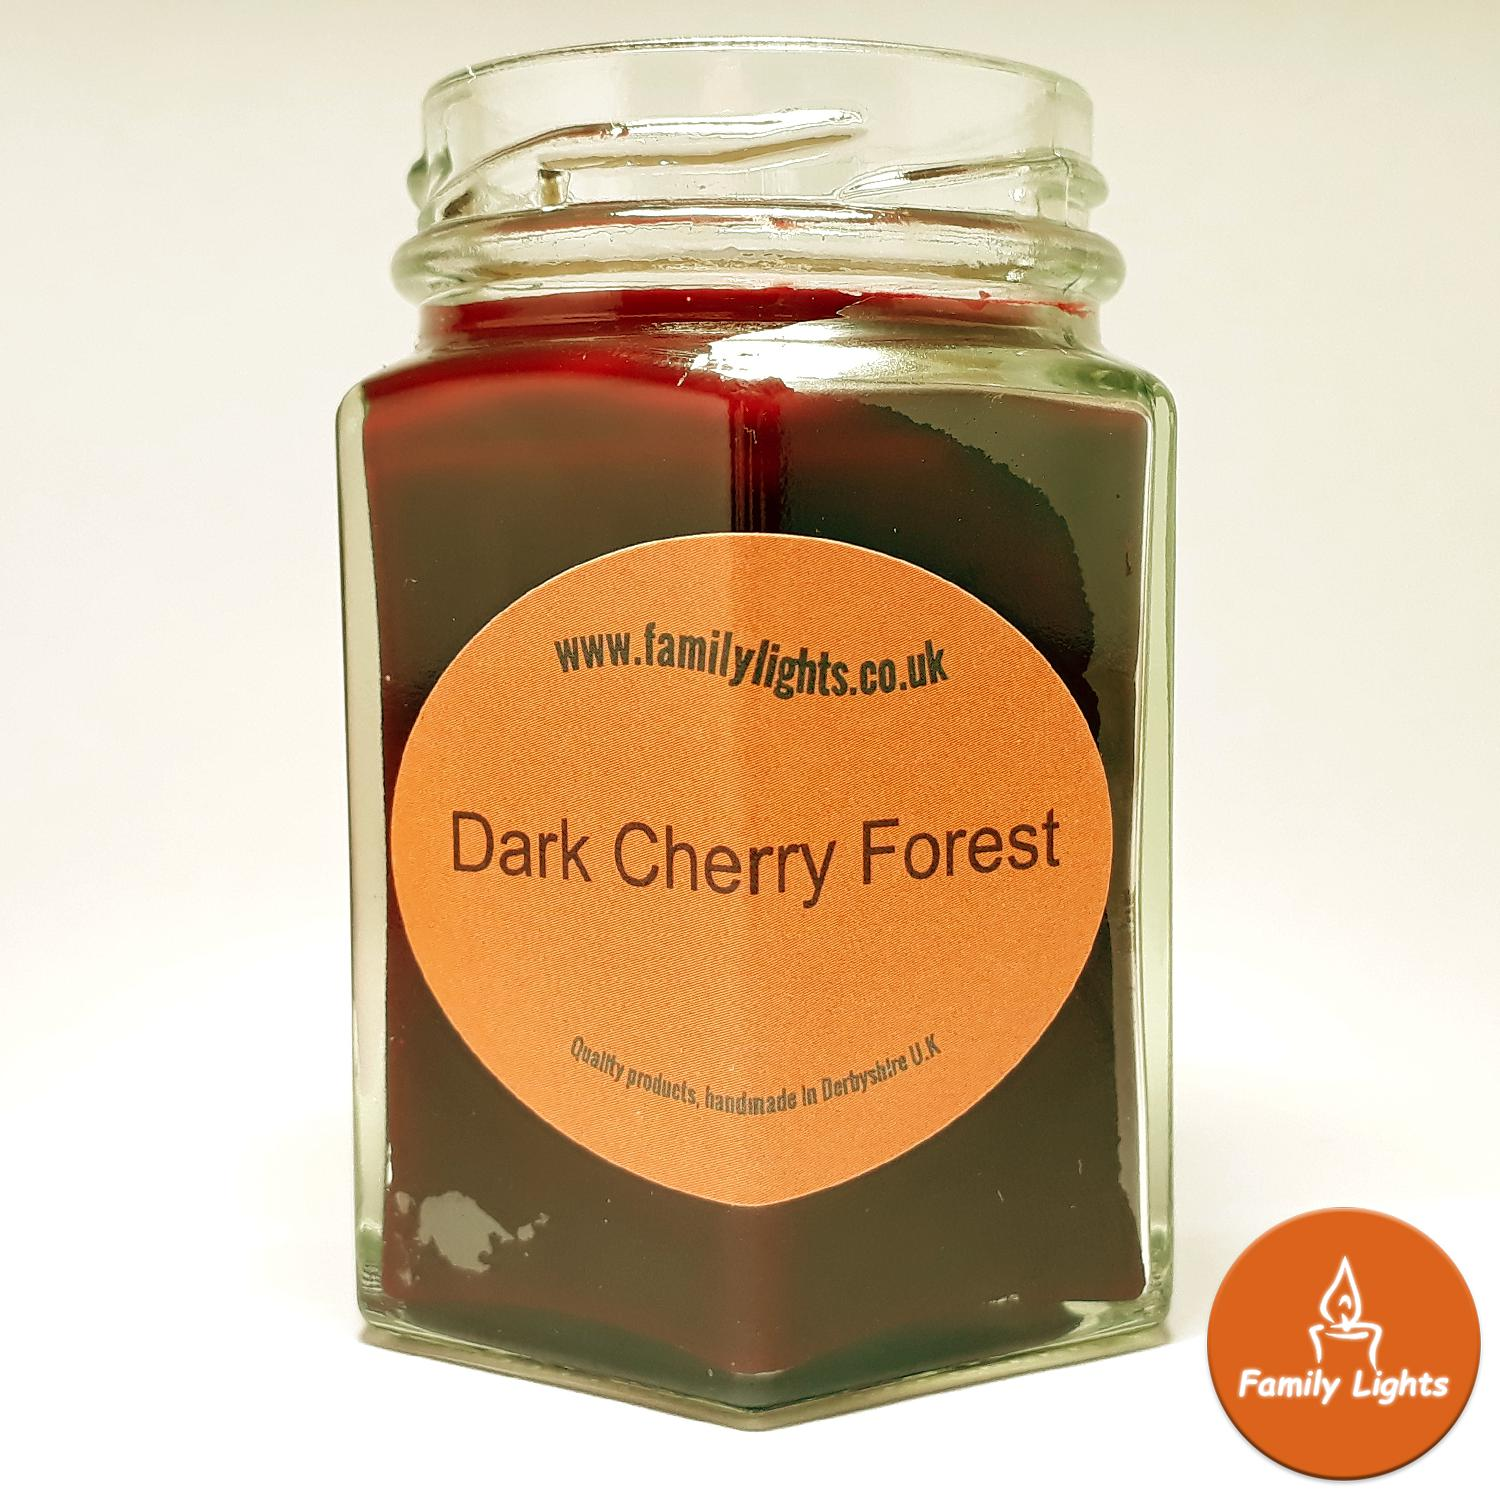 Dark Cherry Forest - Family Lights